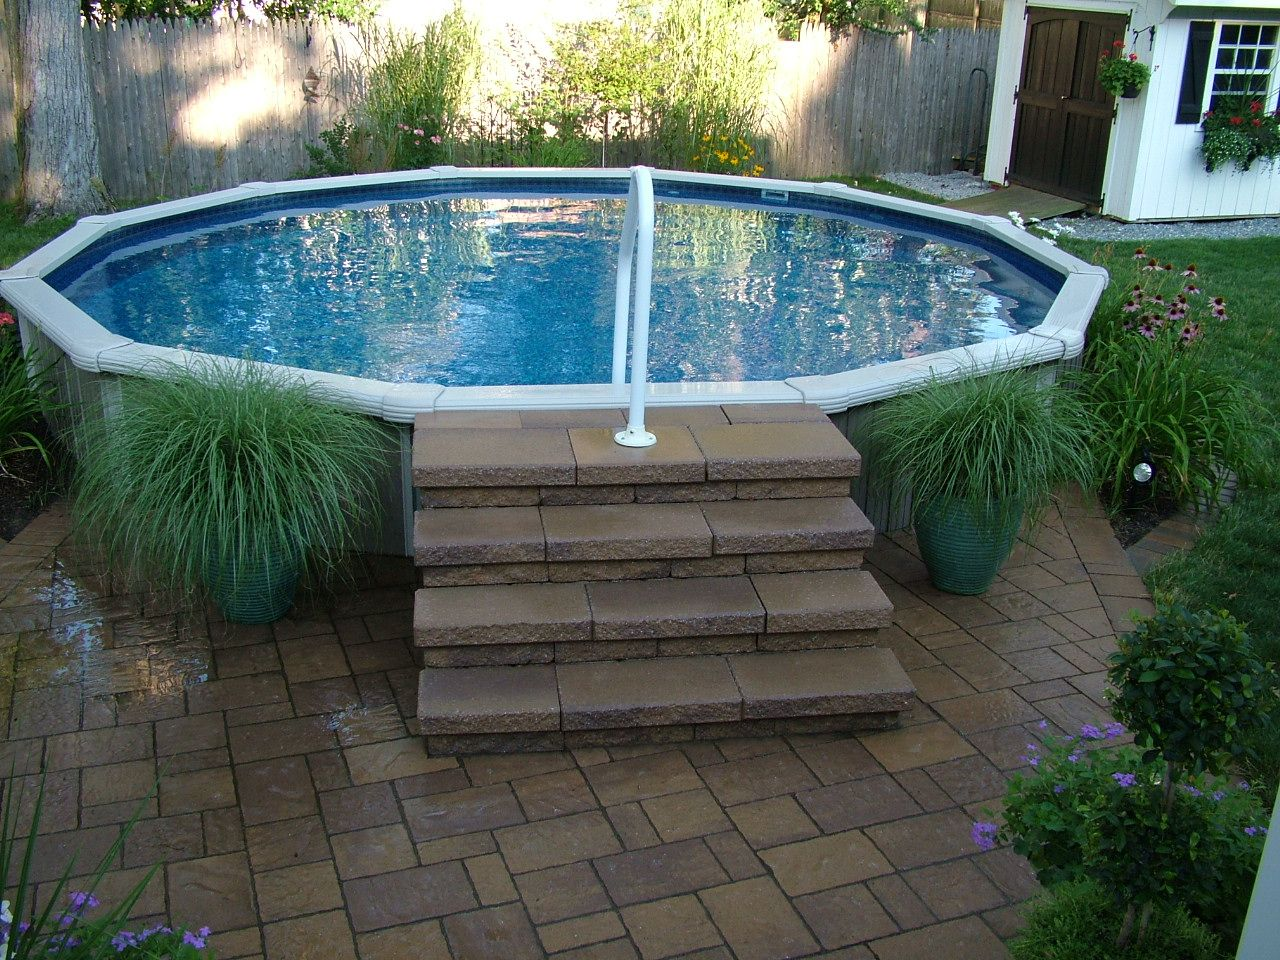 16 spectacular above ground pool ideas you should steal for Above ground pool decks for small yards